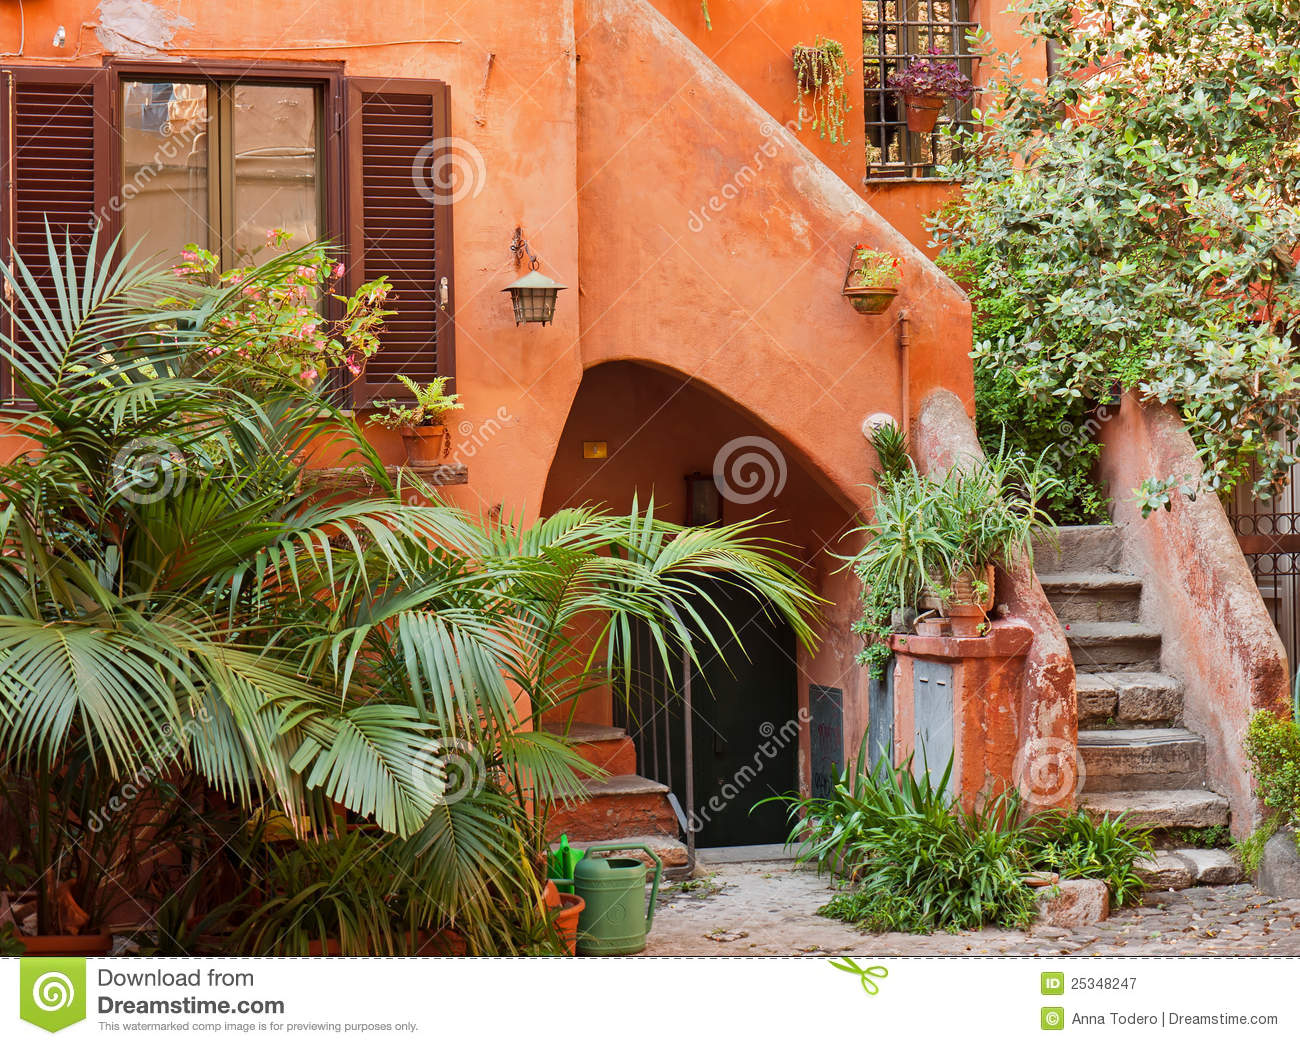 More similar stock images of characteristic courtyard in italy